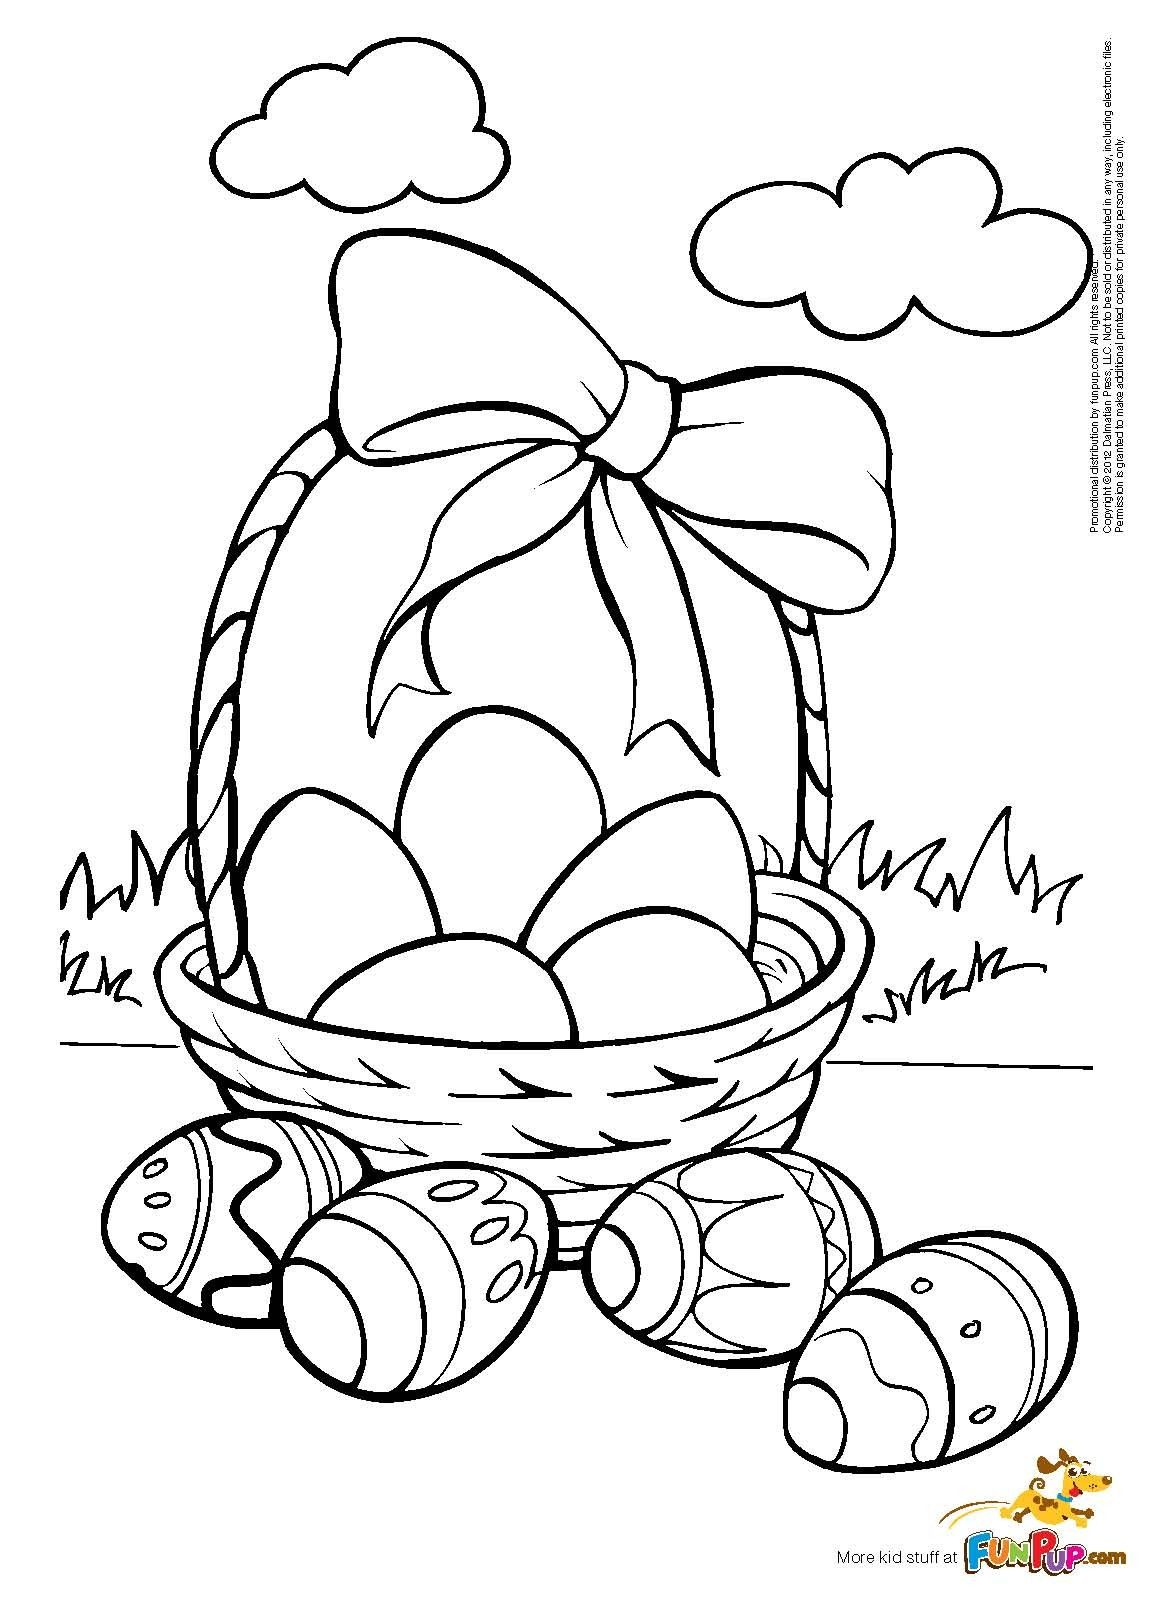 Easter Eggs Coloring Page | Free Printable Coloring Pages ...